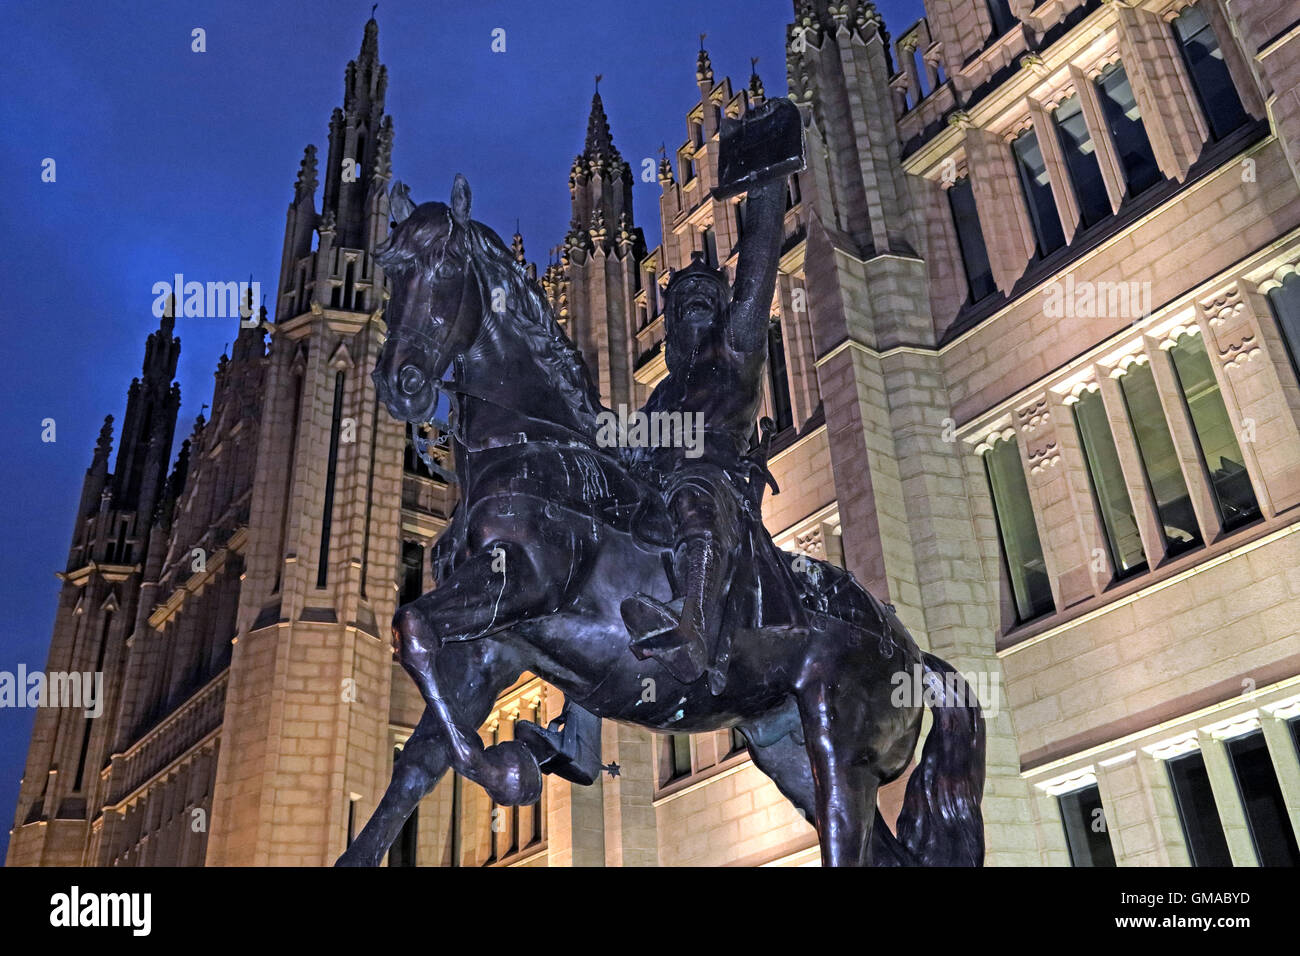 Robert The Bruce statue,Marischal College at dusk, Aberdeen City, Scotland, UK - Stock Image